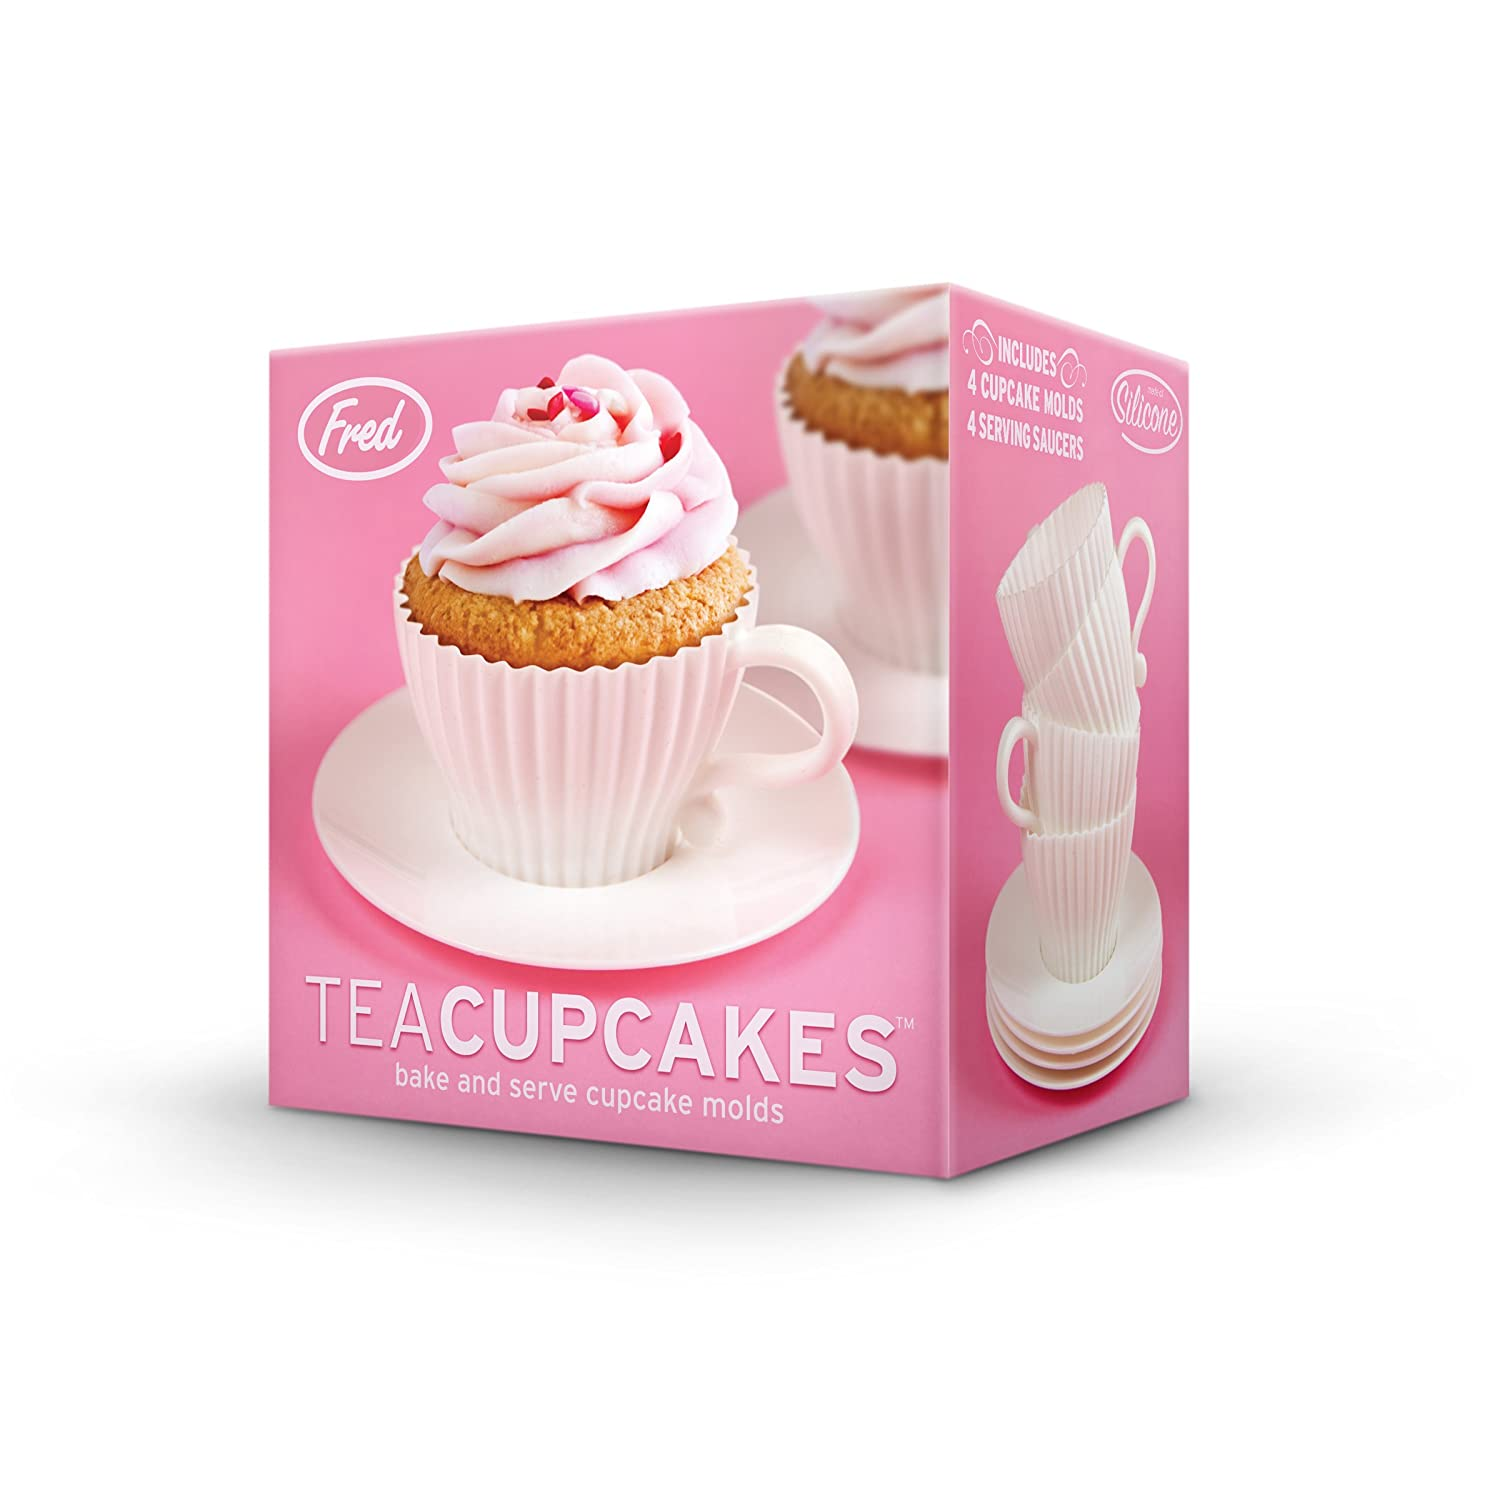 fred teacupcakes baking cups set of 4 cups and